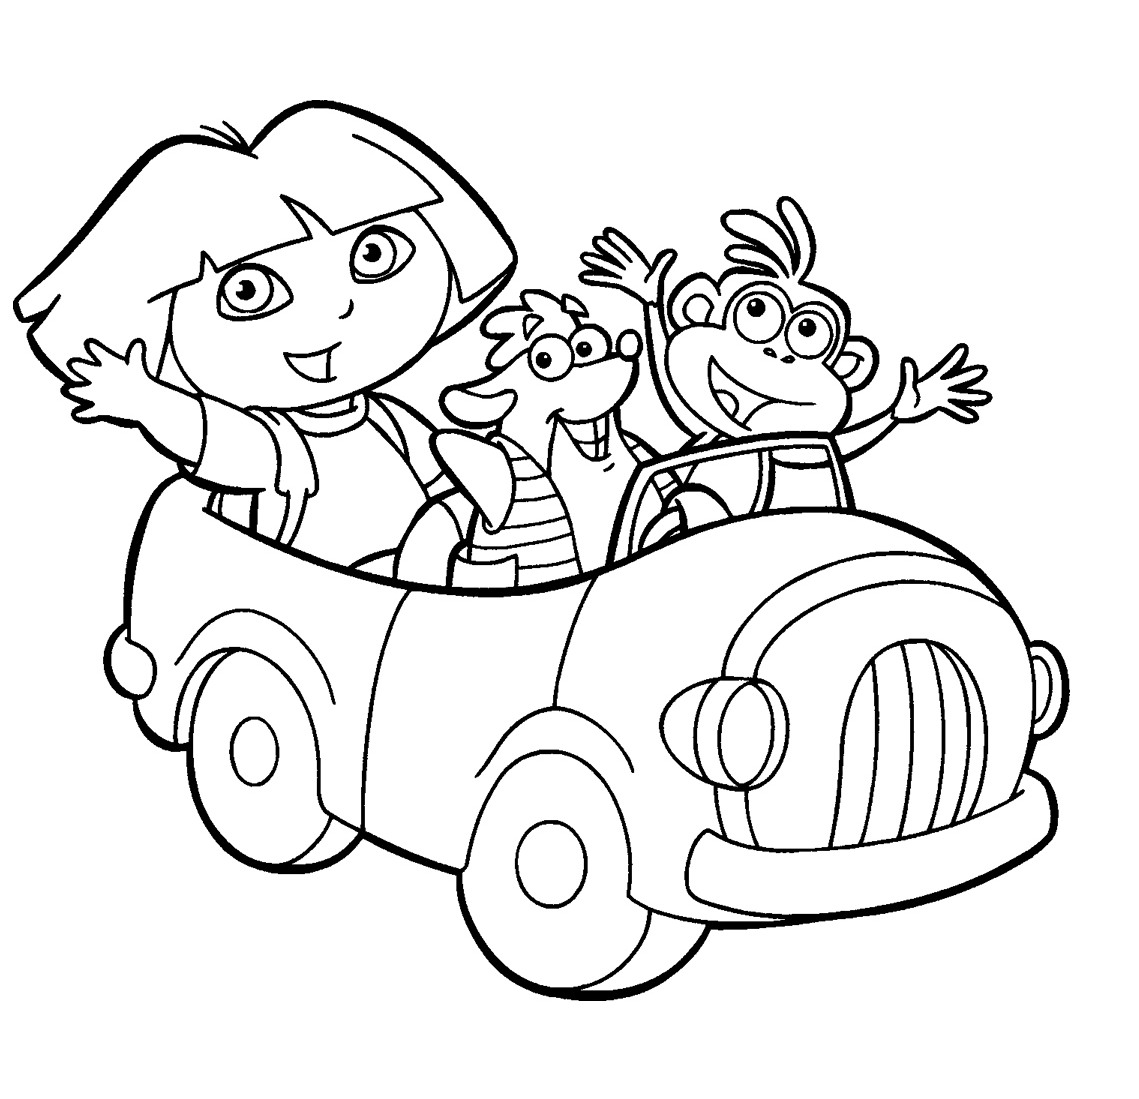 dora-the-explorer coloring pages printable,printable,coloring pages